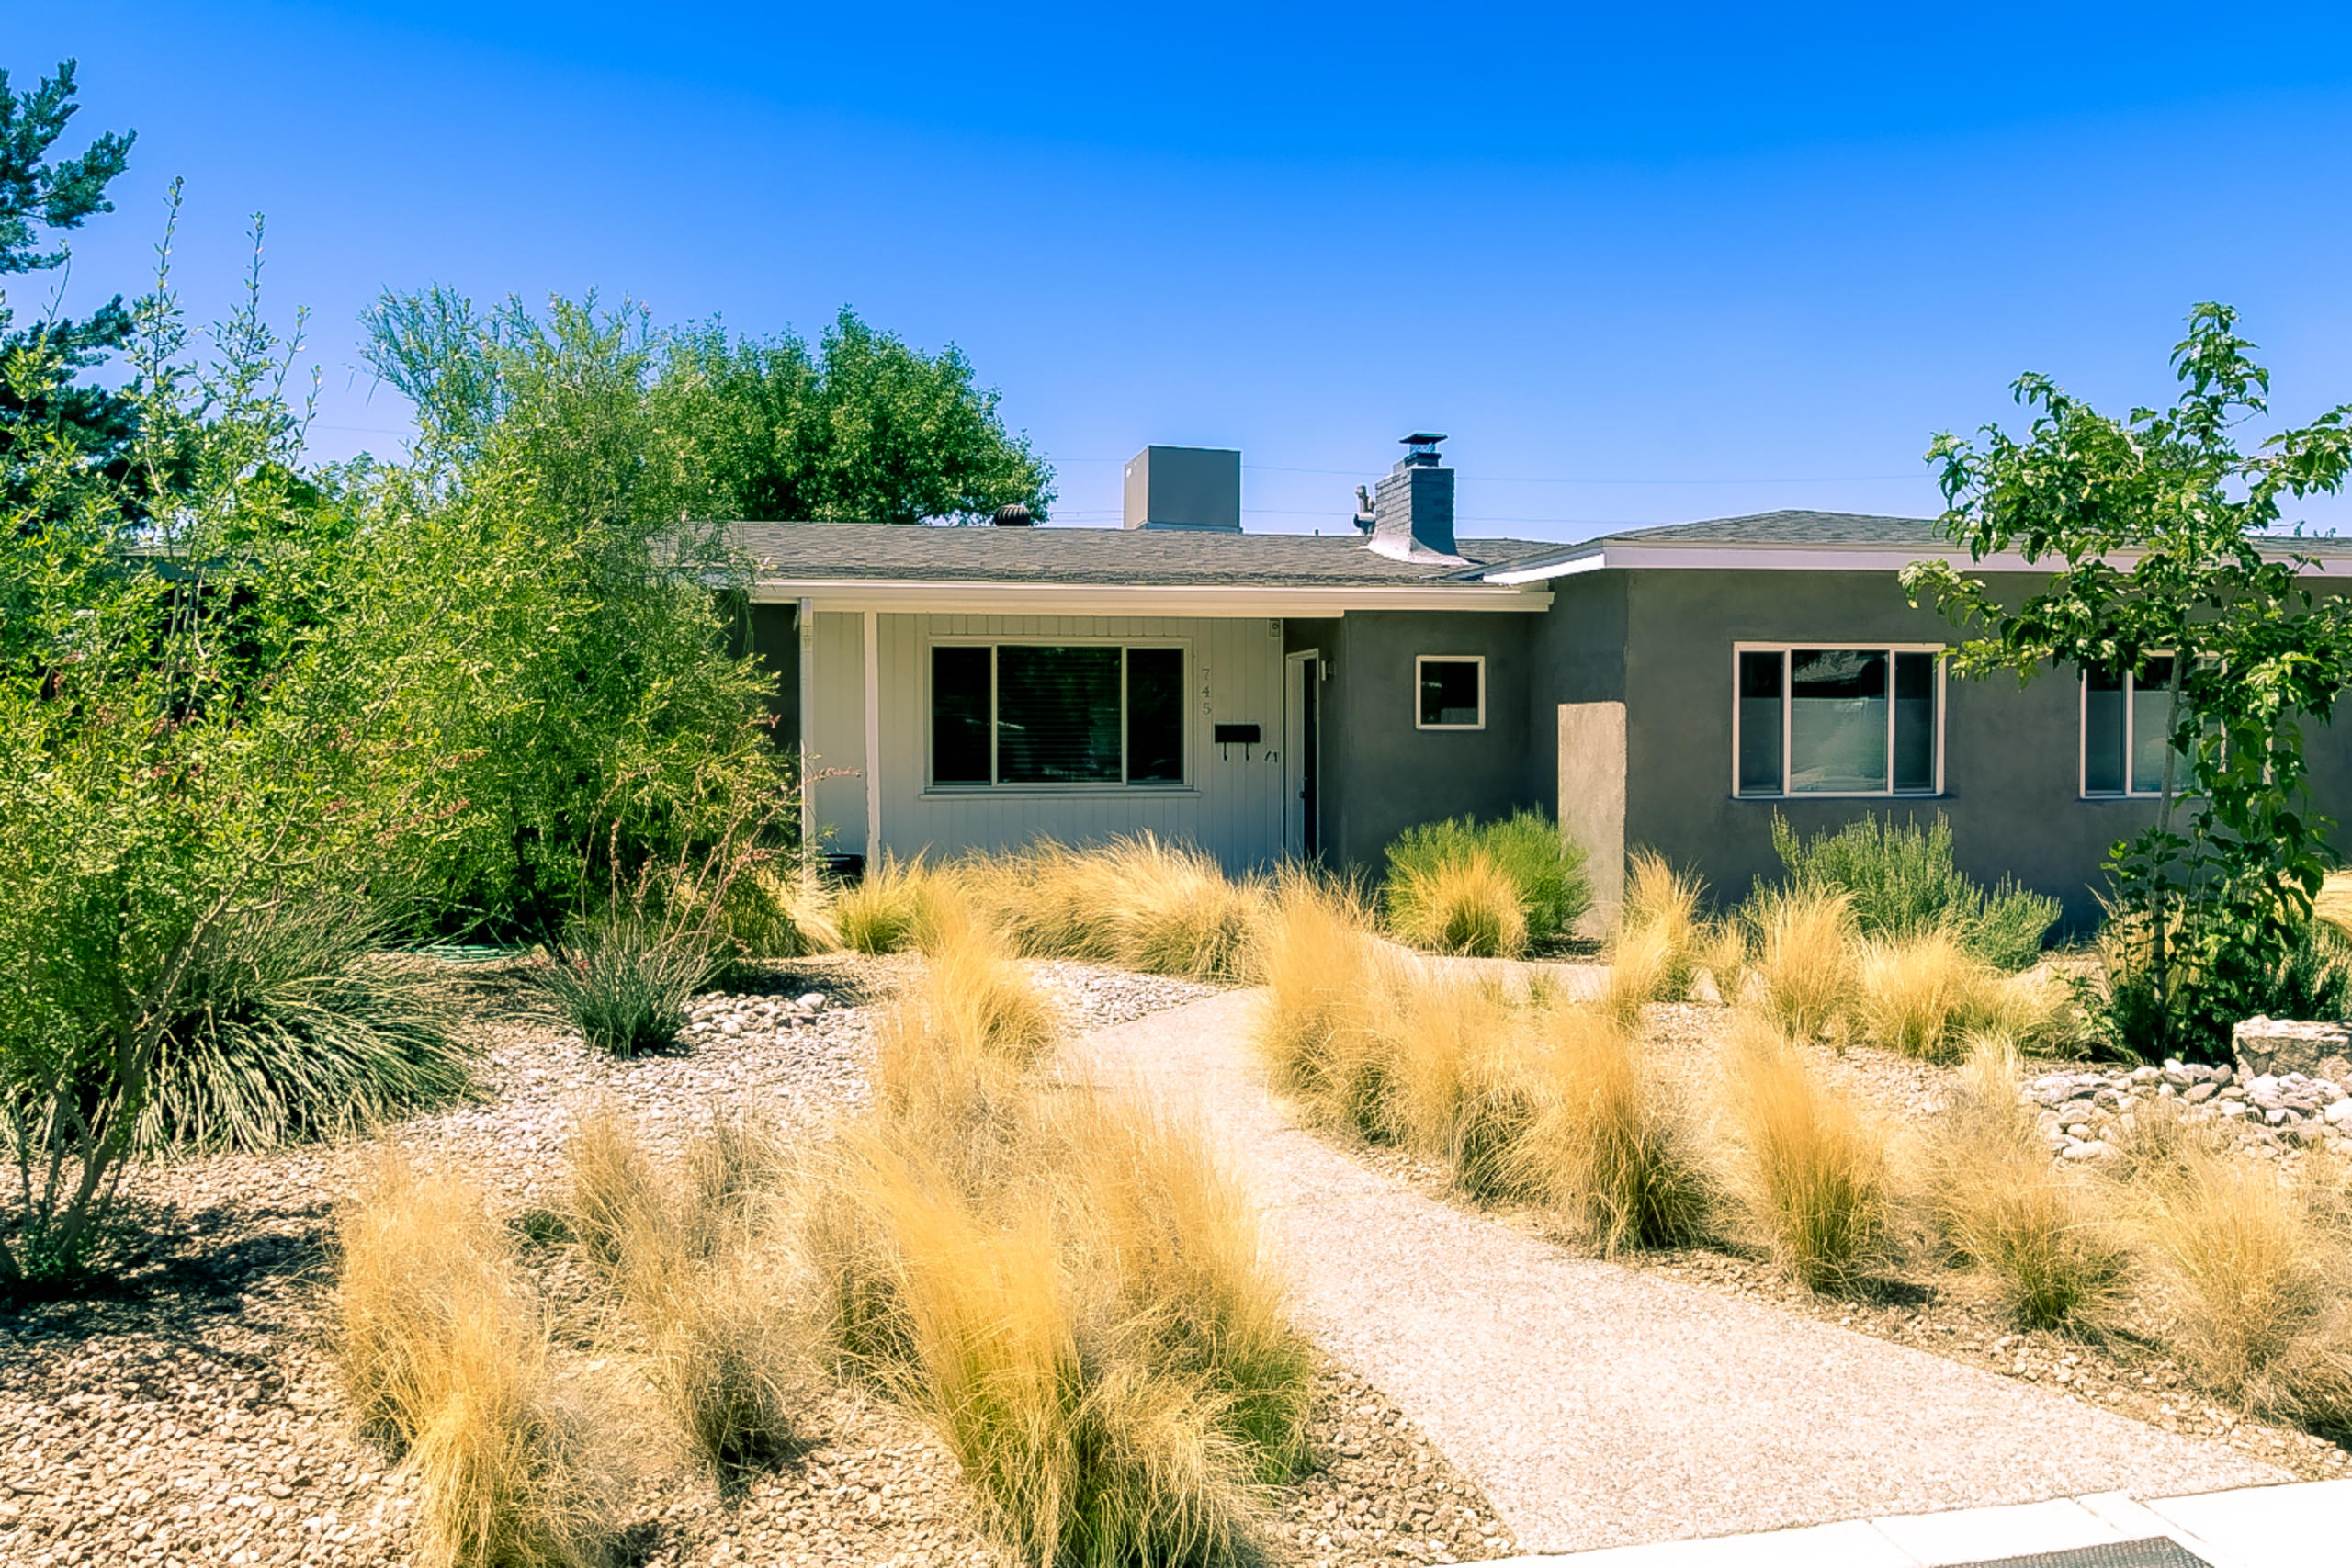 It's 745 Morningside Dr NE- classic mid-century ranch turned contemporary chic w/ architect-designed renovation. In the heart of the La Hacienda neighborhood, the sunlit home is just 2 blocks from Twin Parks & McDuffie Park. Exceedingly livable, 2,280 sq ft, 4 bd, 1.75 ba, thoughtfully designed & impeccably updated. Open kitchen w/ quartz counters & adjoining laundry room. Oversized 1.5 car pull-through garage w/ doors at front & back. Oak hardwood floors. Hallway bath fully remodeled 2020. Recent renovation includes pitched shingle roof, master bed/bath re-do, stucco, HVAC, tankless H2O heater, can lighting, thermal windows, den addition w/ sleek concrete floor. Huge lot, xeriscaped front & verdant backyard w/ 2 separate patios & sprinkler system. Close to Nob Hill, UNM, dining & shopping